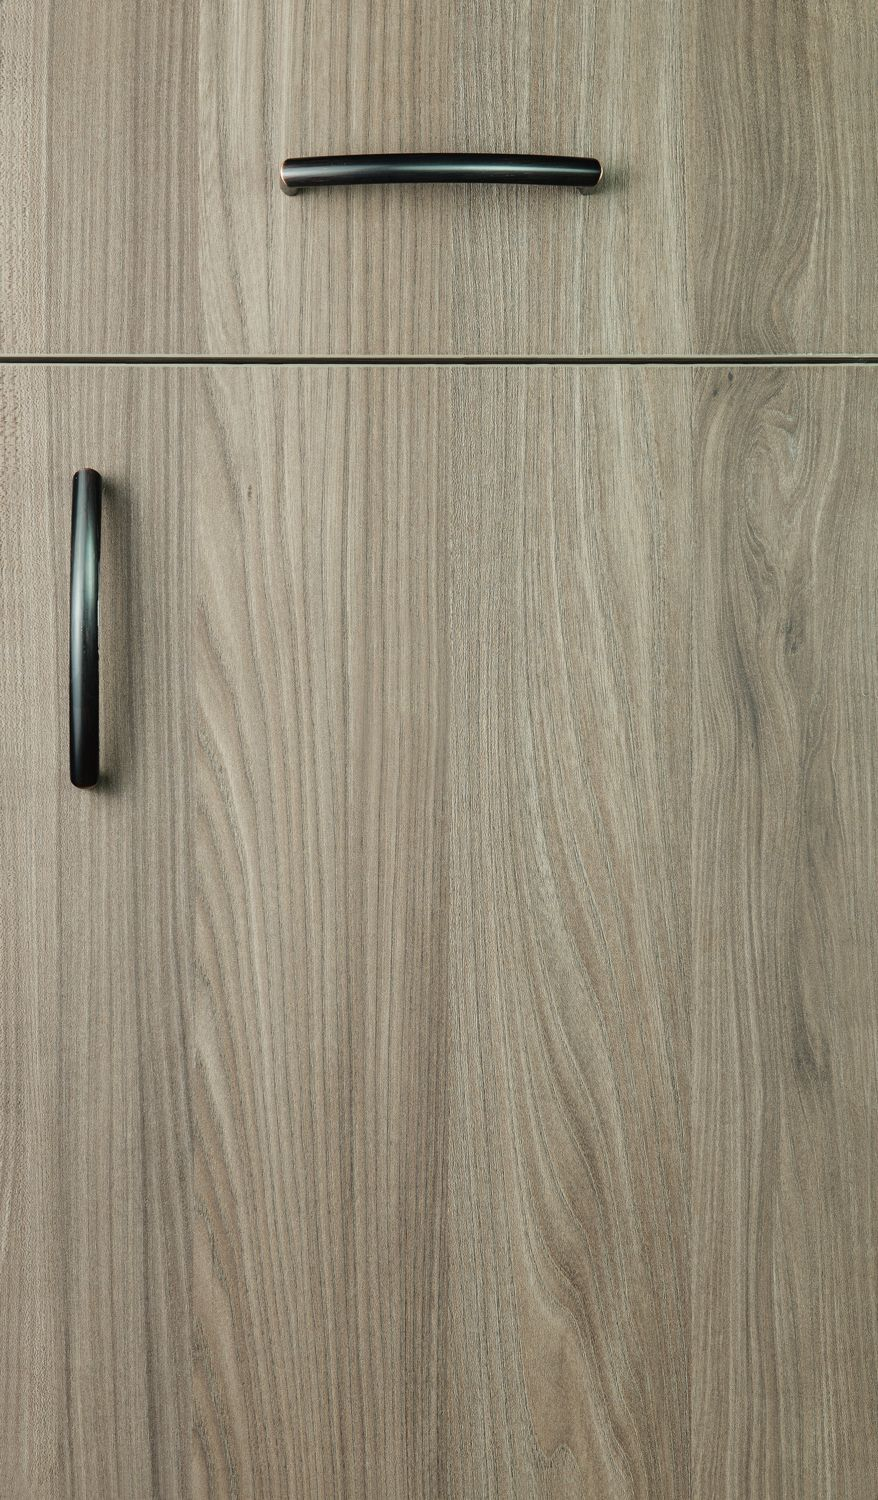 Milano Textured Melamine Door Style Finished With The